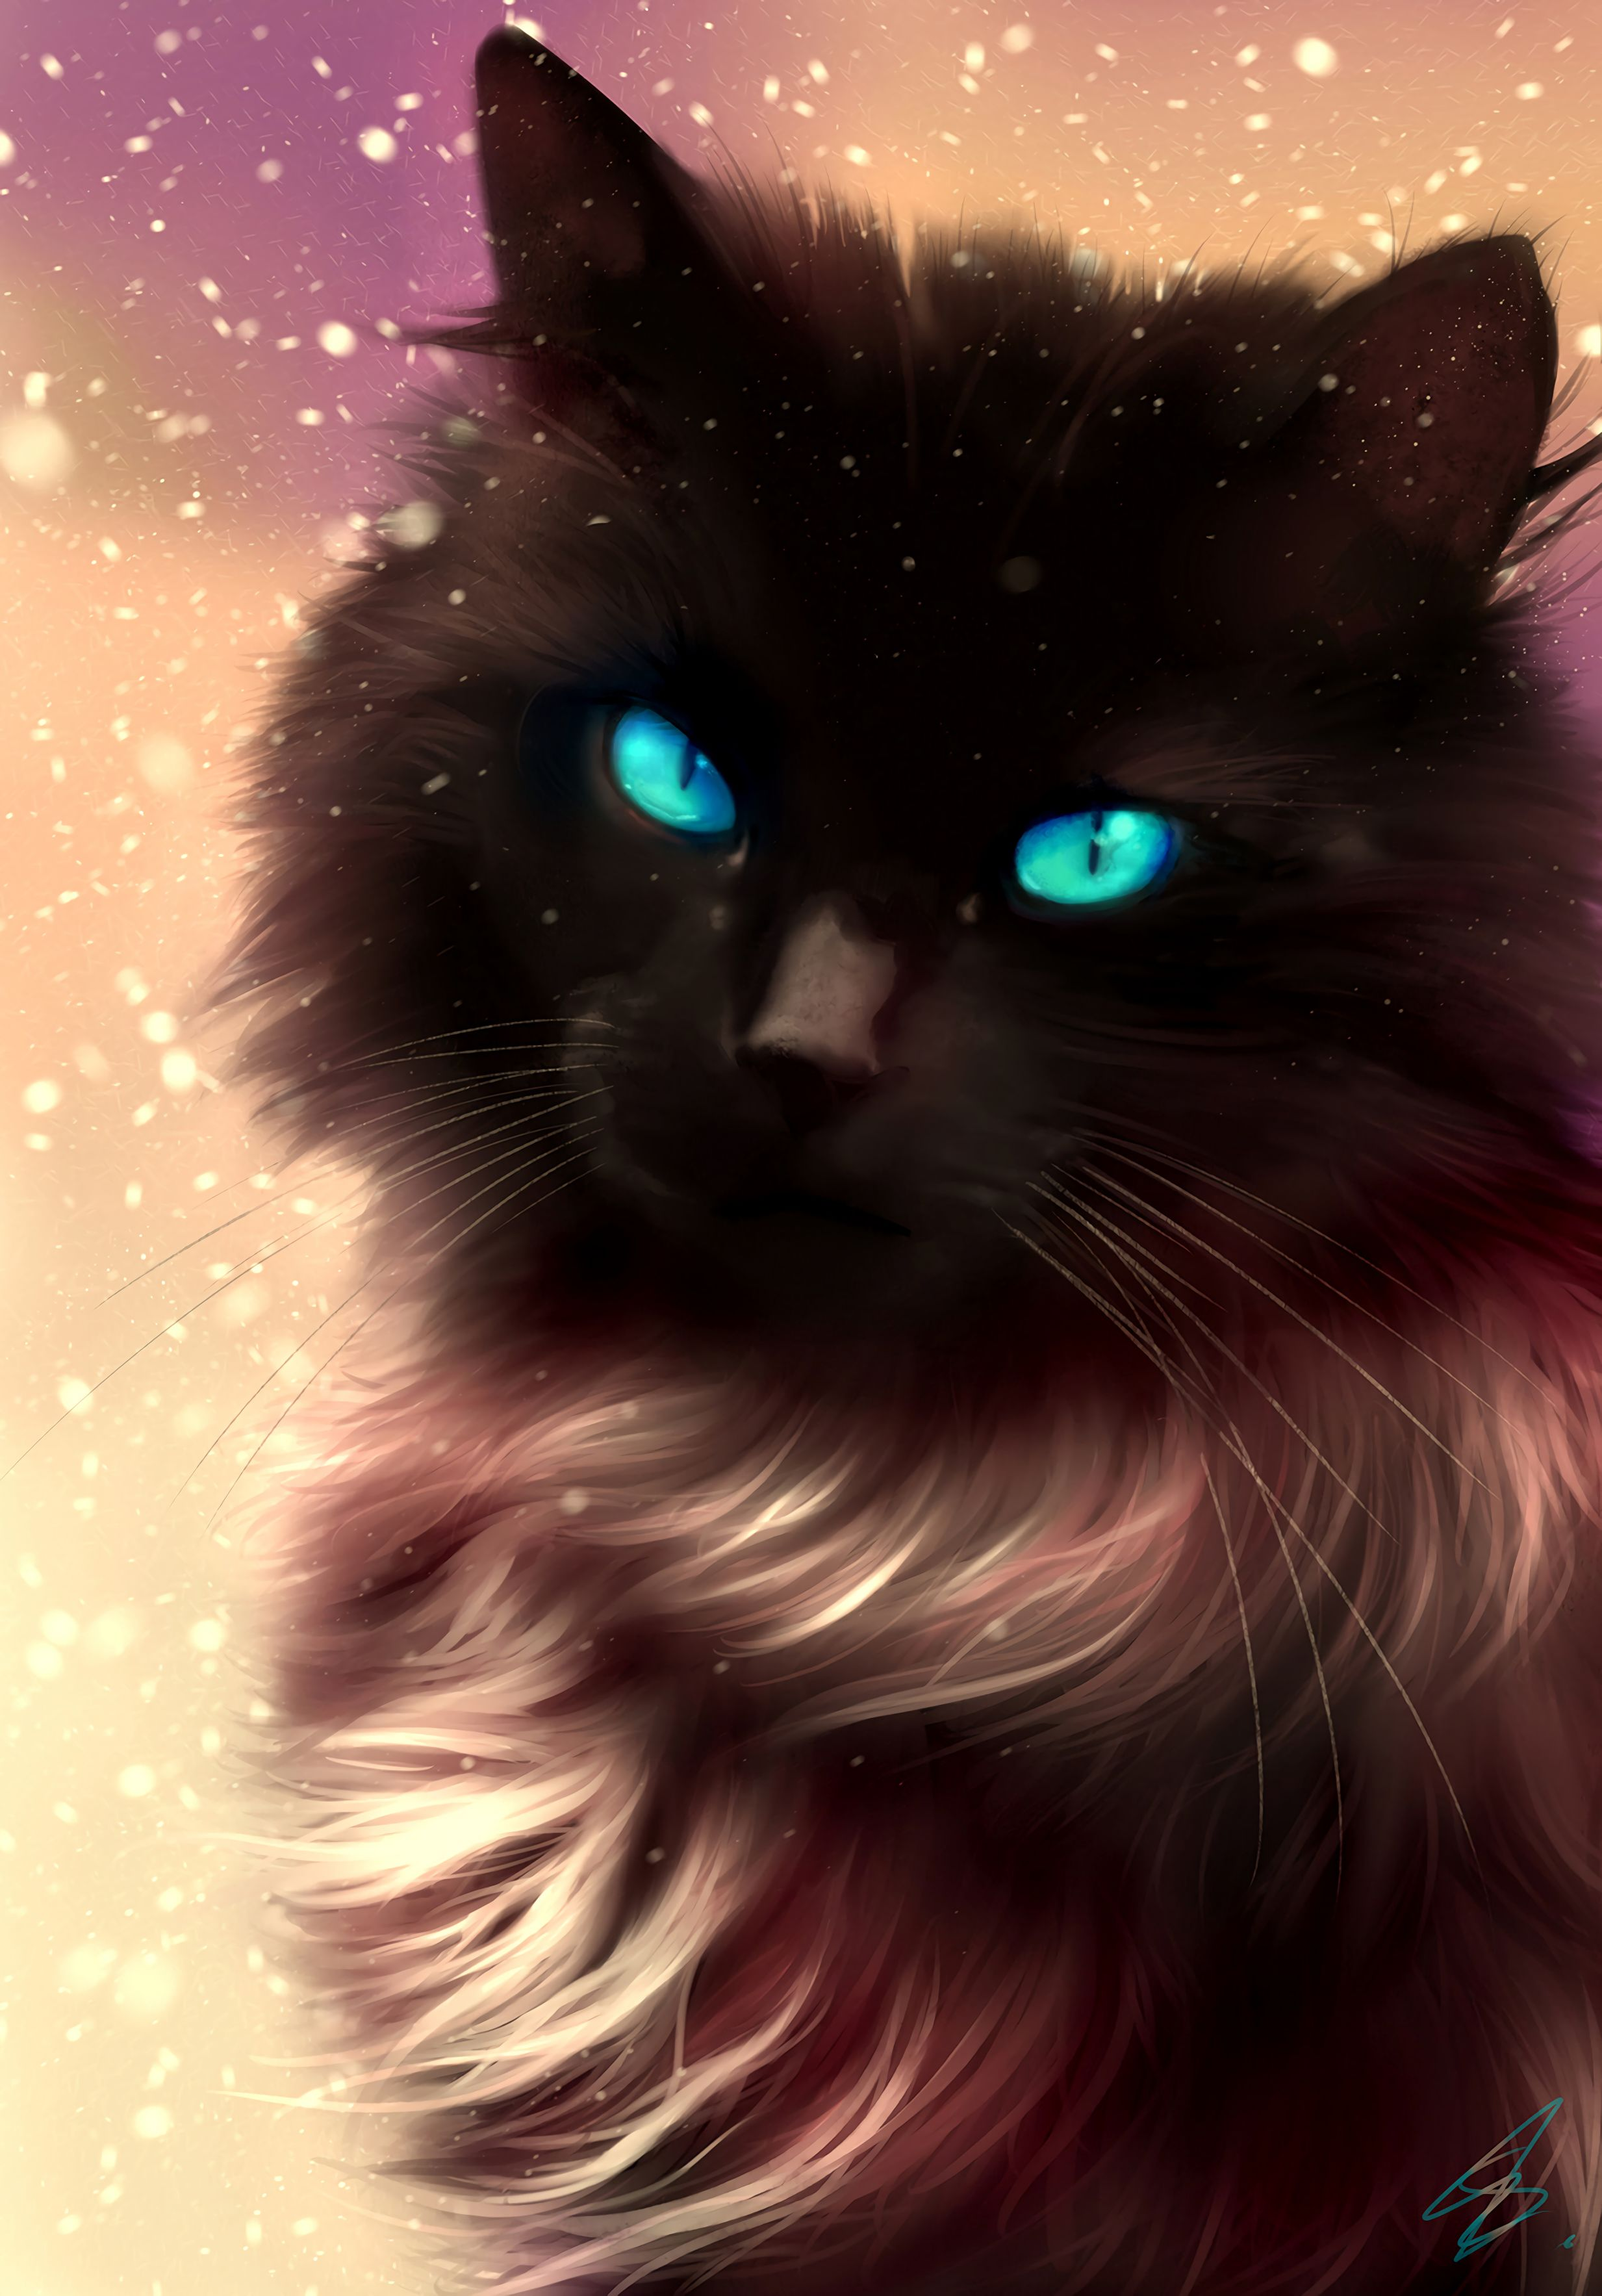 153286 Screensavers and Wallpapers Fluffy for phone. Download Art, Cat, Fluffy, Blue Eyed, Blue-Eyed pictures for free